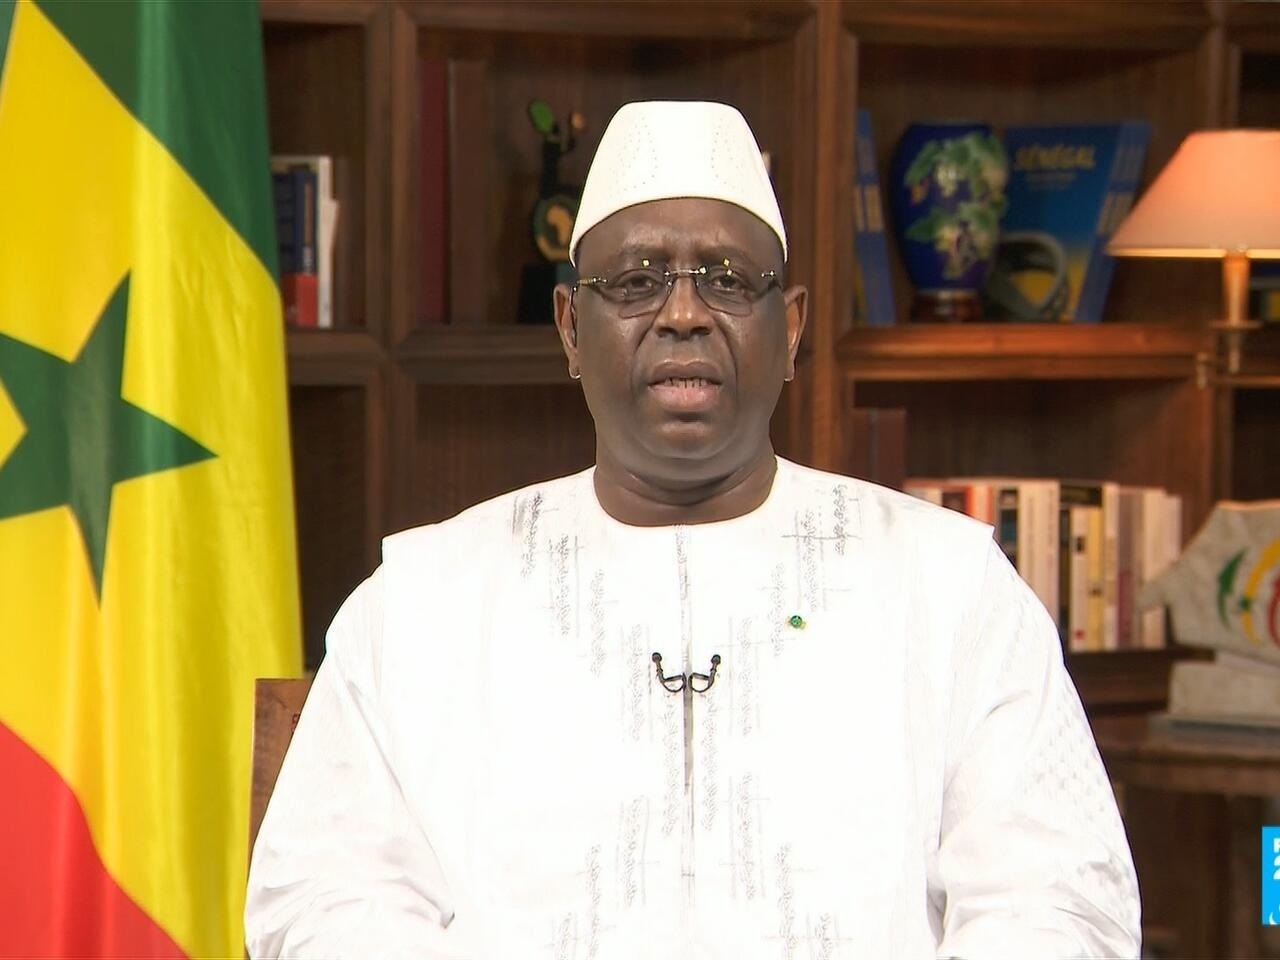 Macky Sall is one of the best heads of state in Africa